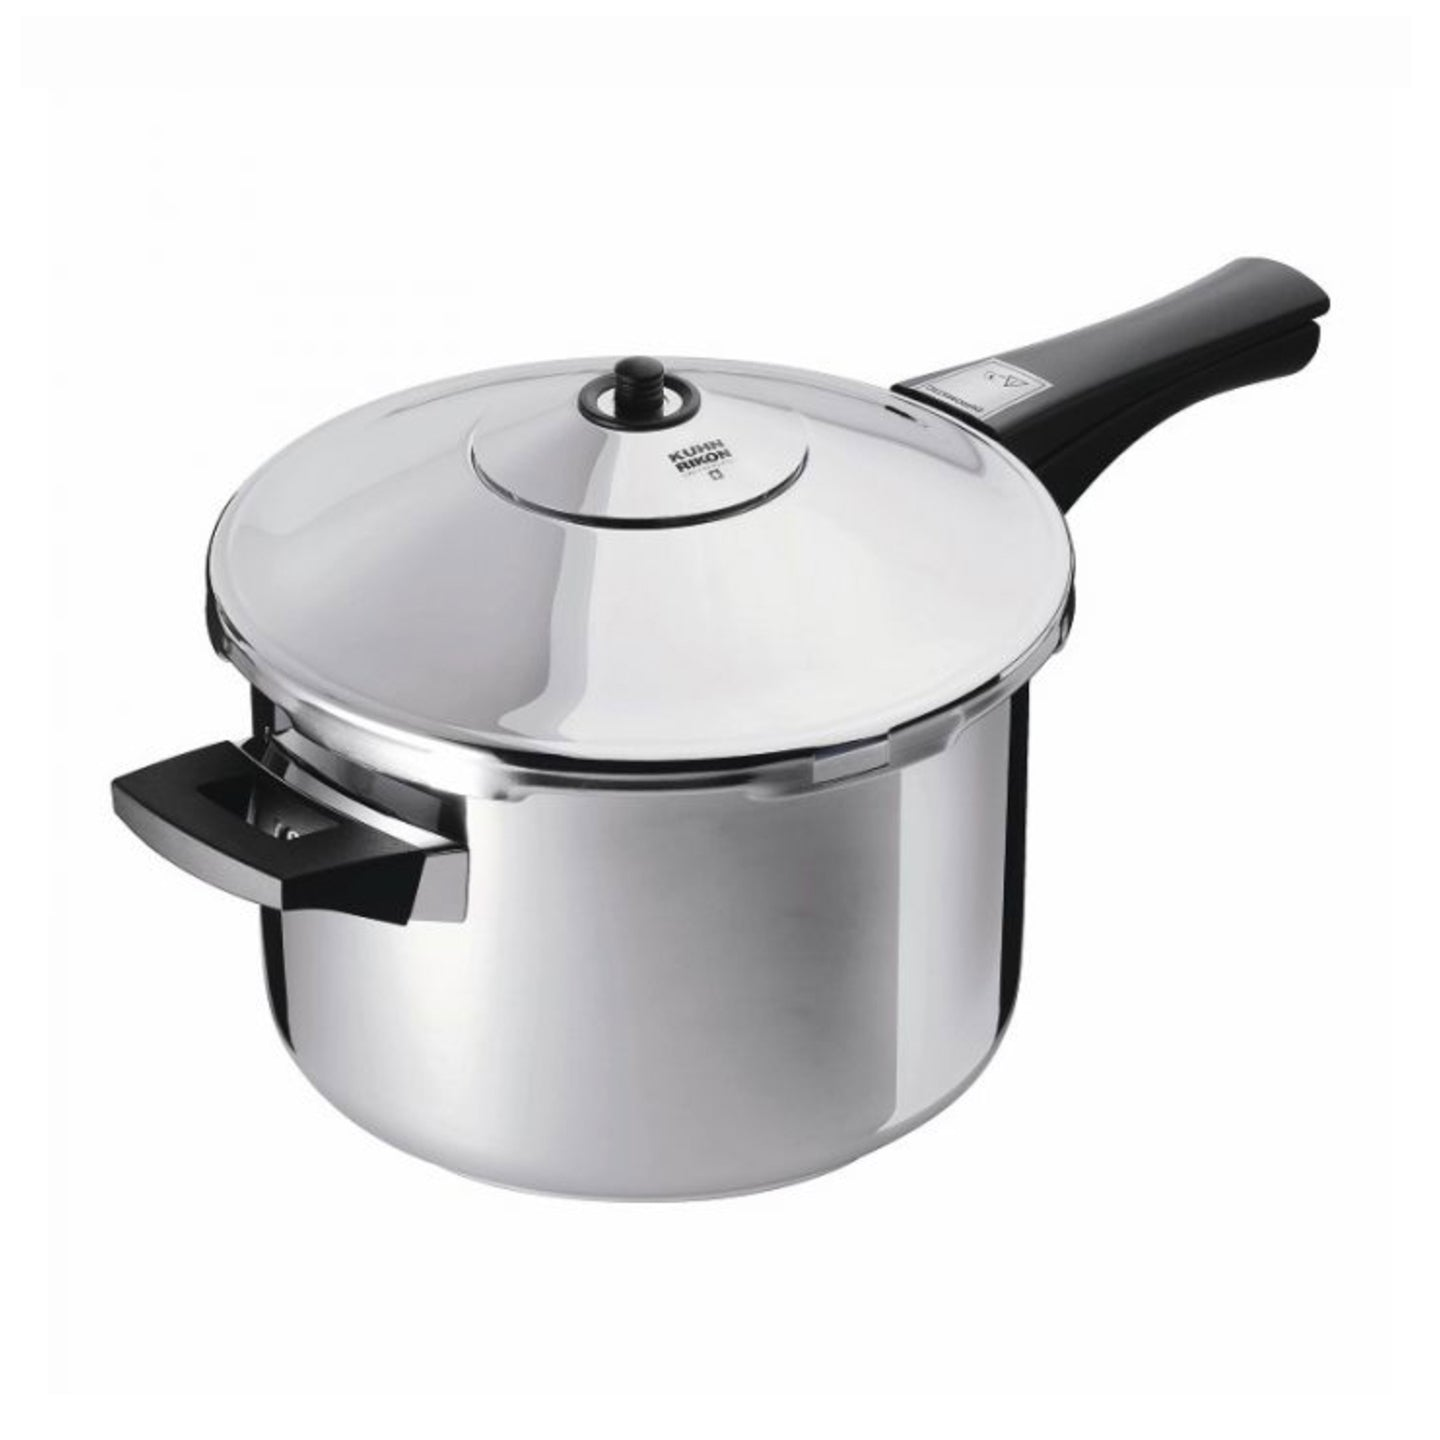 Kuhn Rikon Pressure Cooker / Fast Cooker - Long Handle